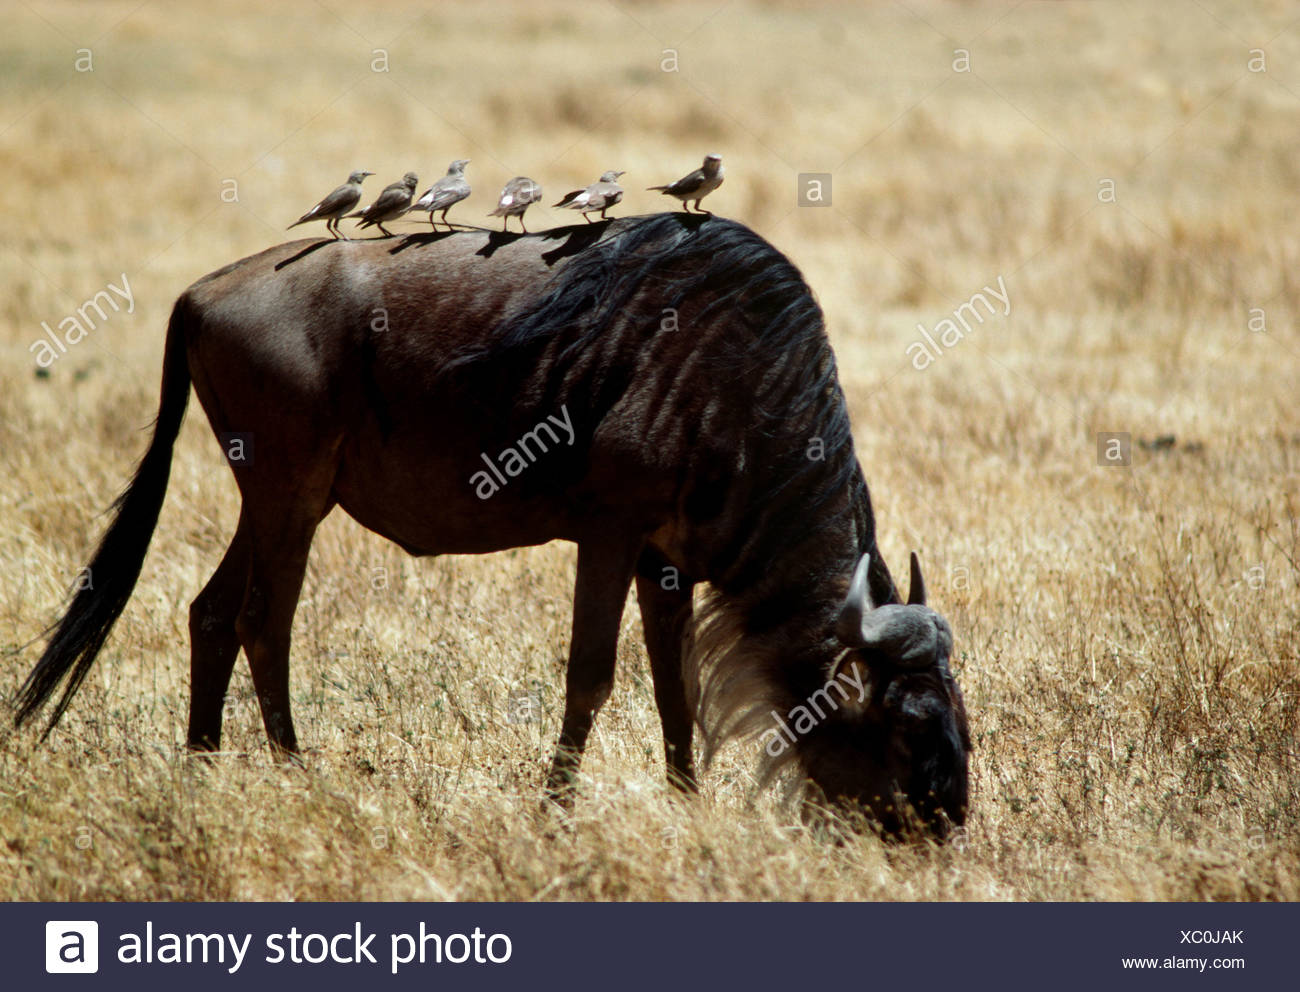 Wildebeest carrying wattled starlings on its back, Tanzania - Stock Image